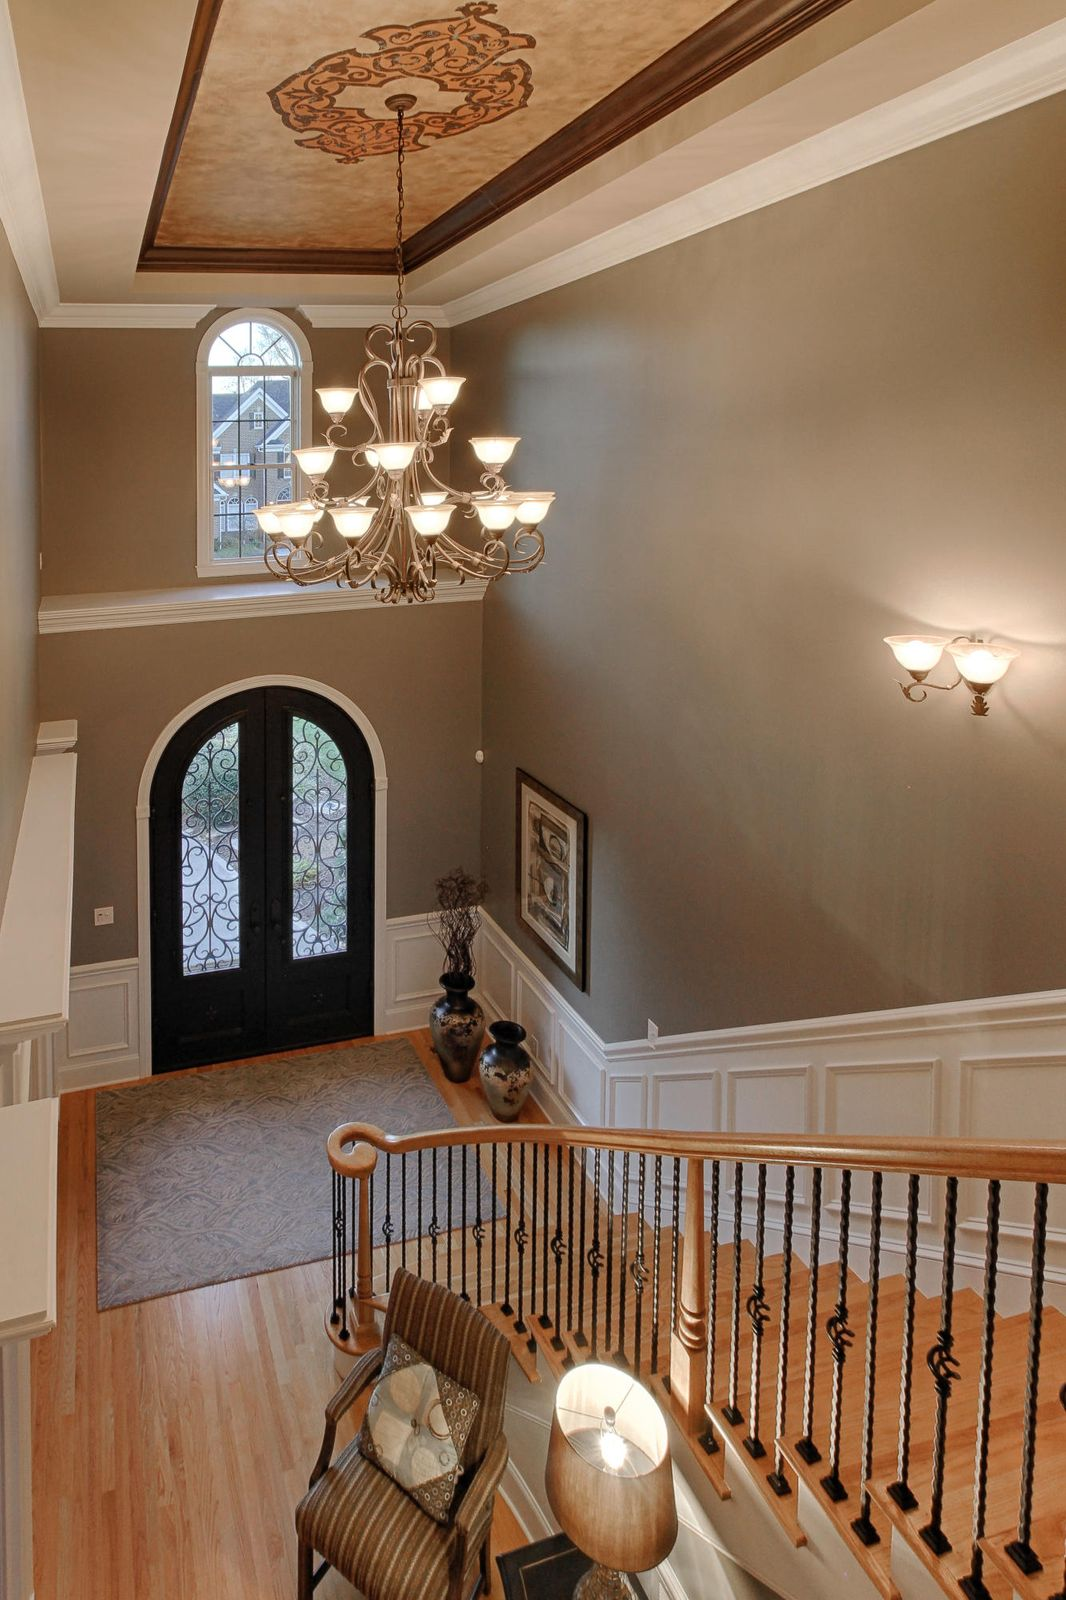 20 - View of Foyer from top of stairs